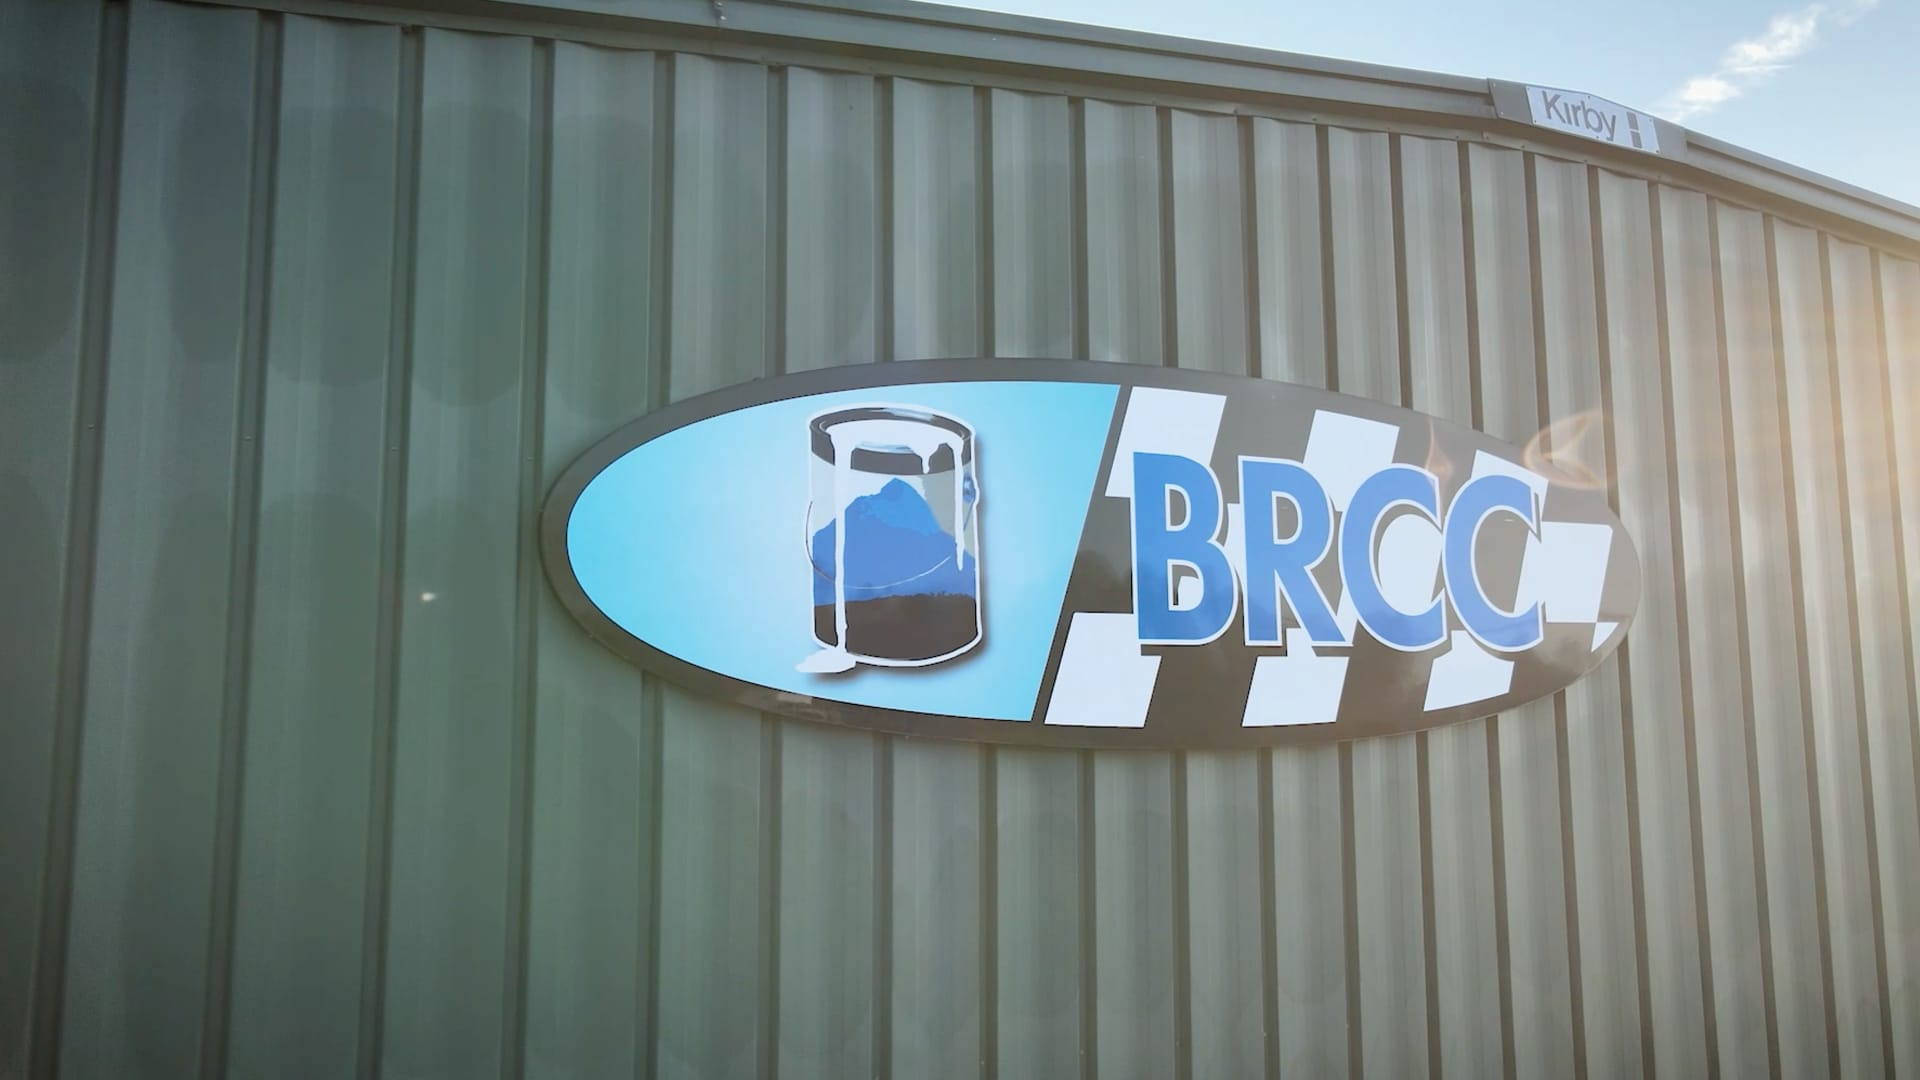 BRCC Warehouse